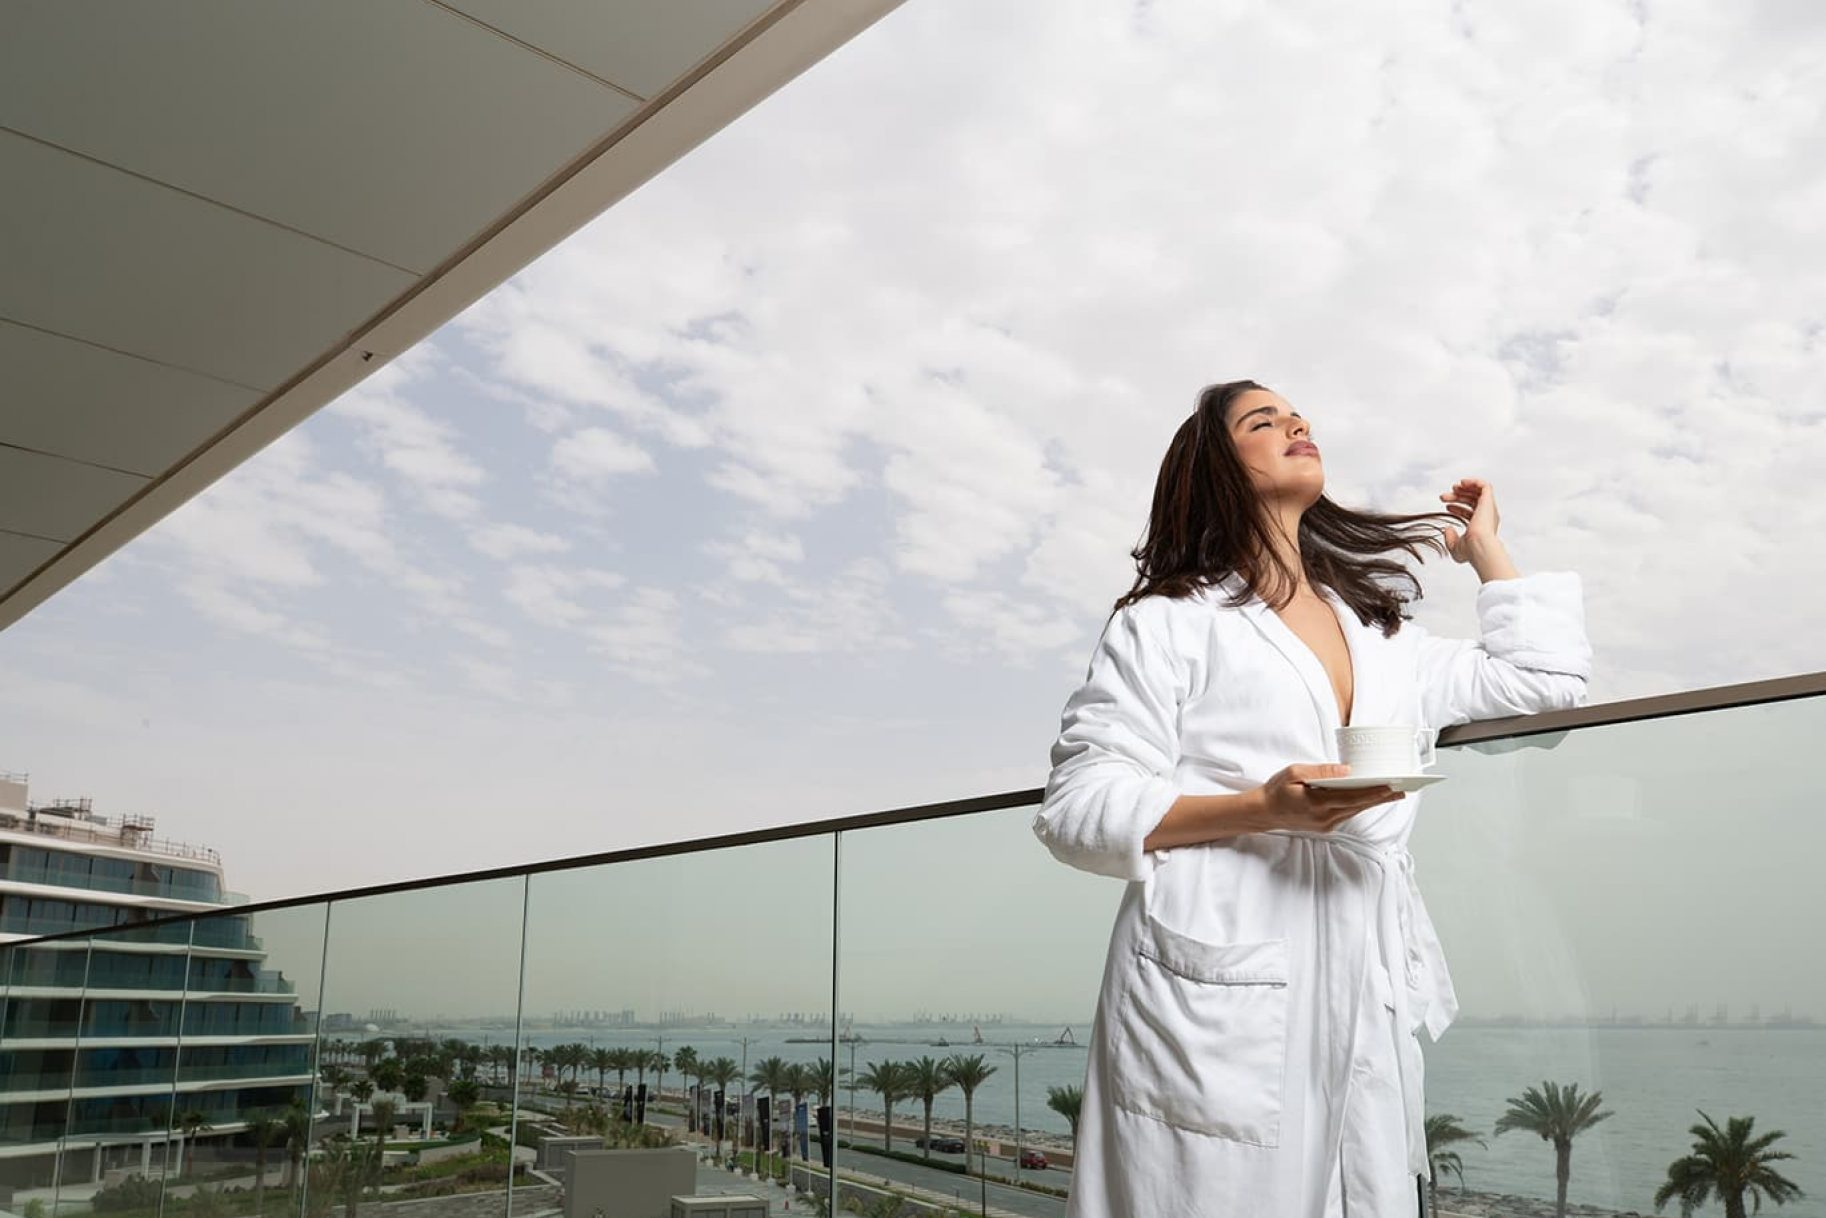 A woman in a bath robe enjoys the view from her waterfront apartment